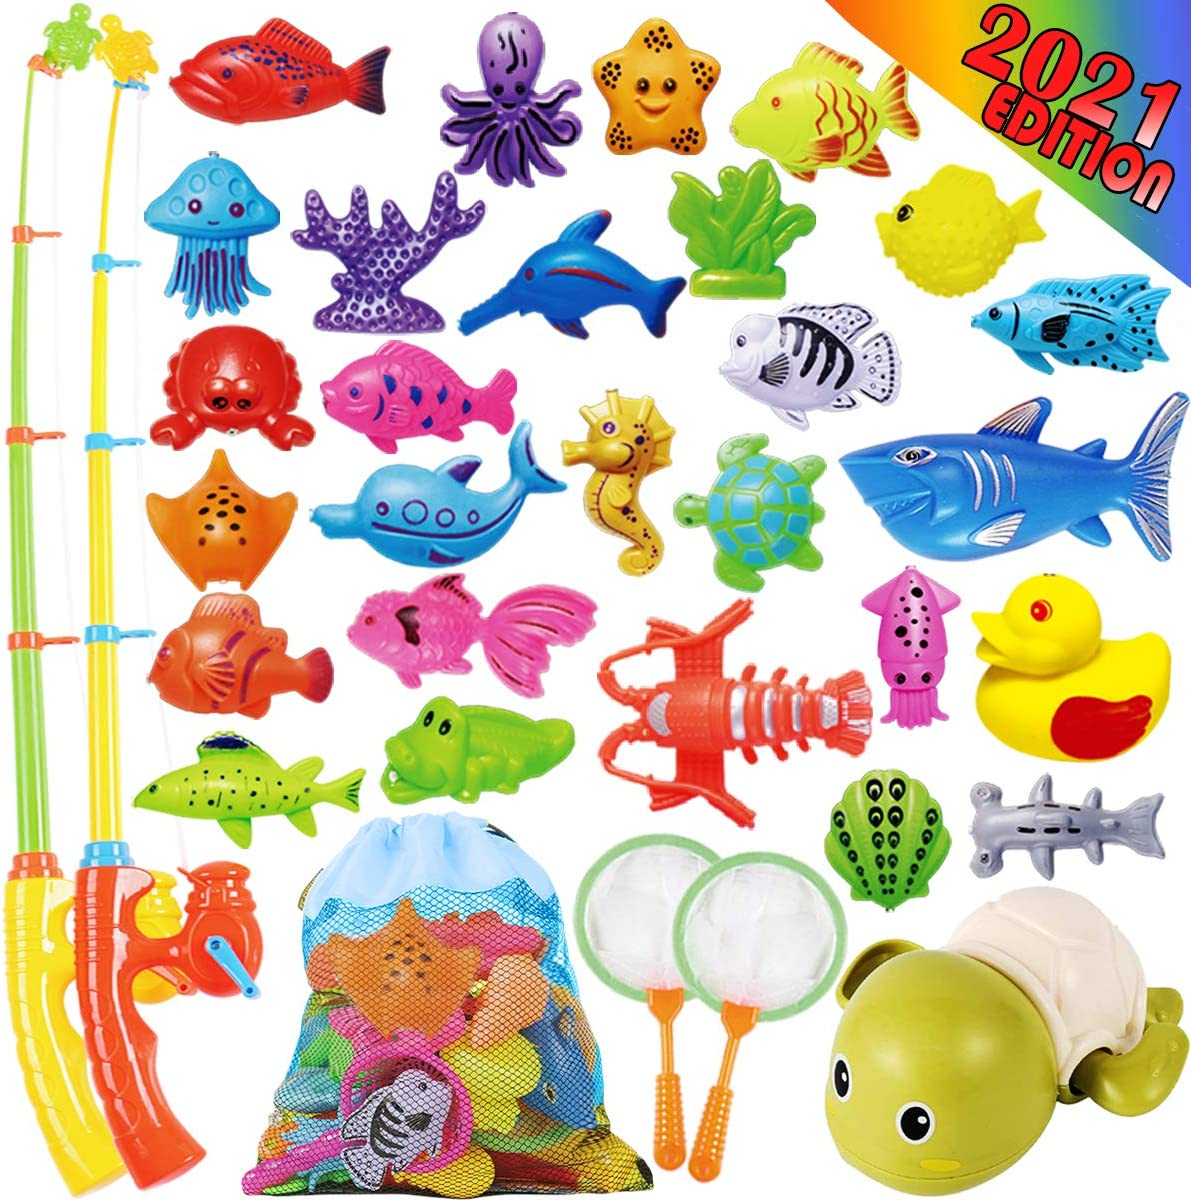 Cheffun Fishing Water Pool Toys for Kids - Bath Toy for Toddlers Magnetic Game Set Outdoor Indoor Carnival Party Water Table Fish for Kiddie Boys Girls Age 3 4 5 6 Years Old Gift Learning Pretend Play